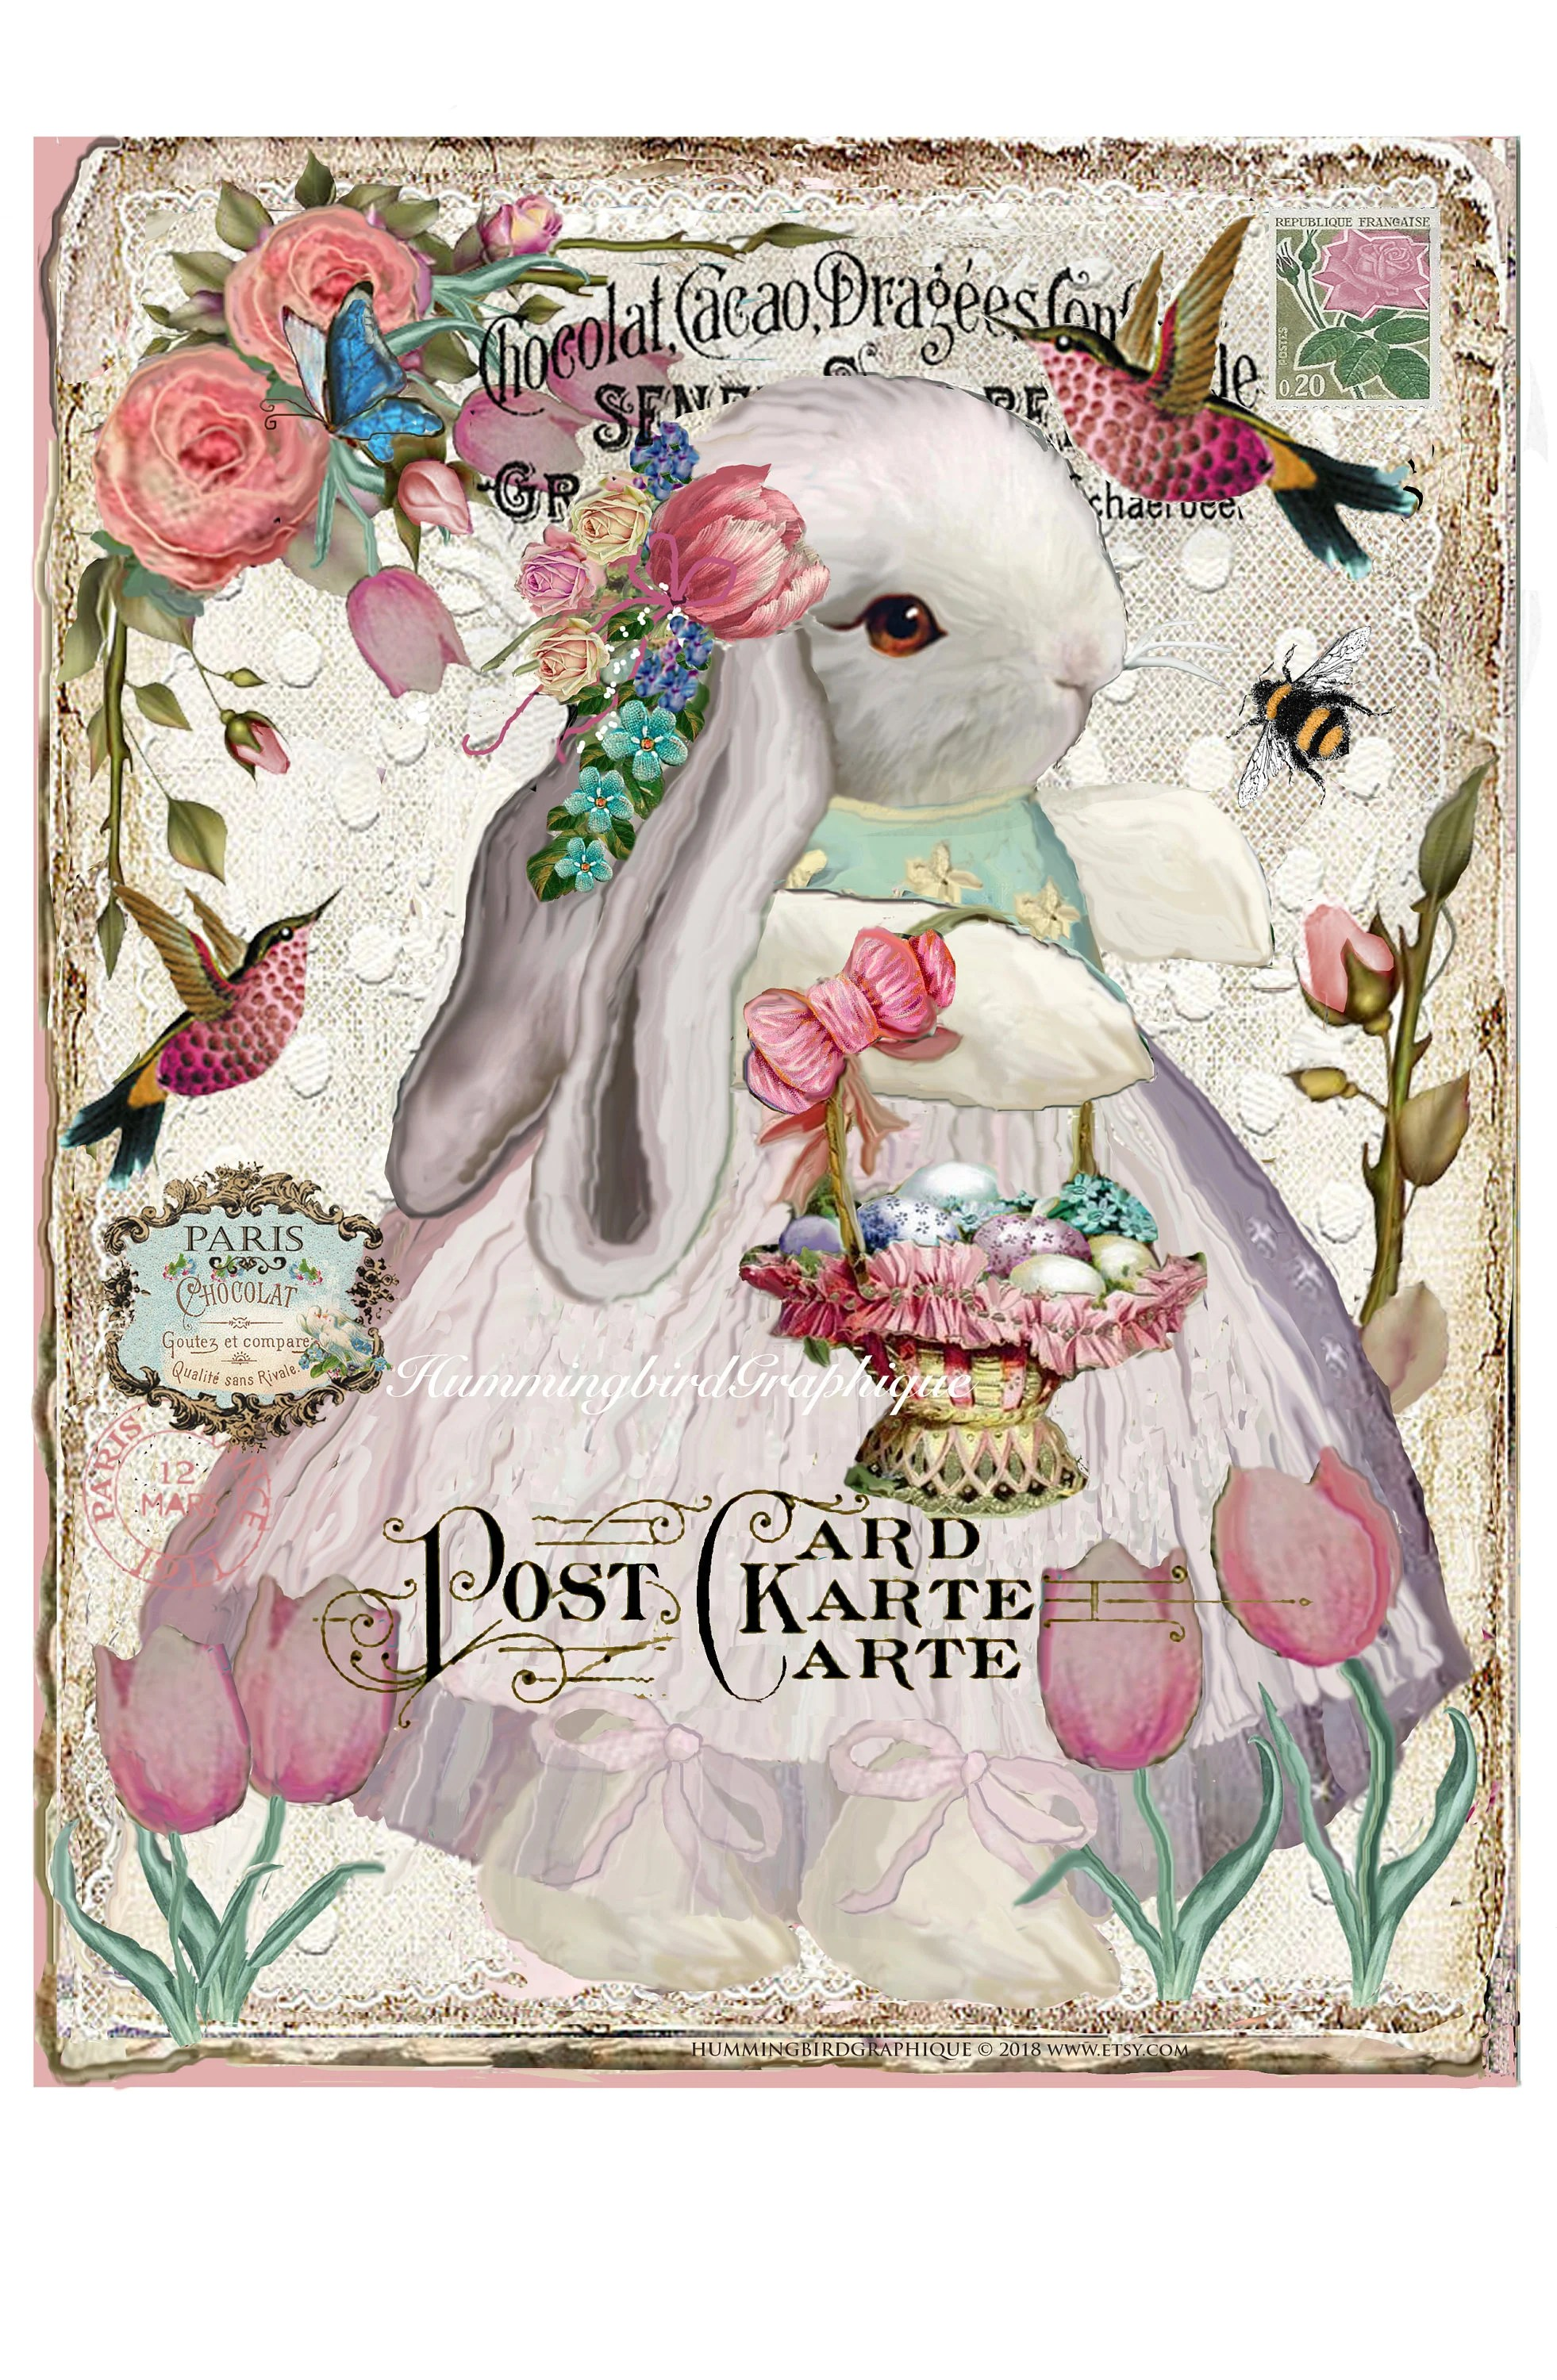 Arte France Journal Easter Bunny With Egg Basket Tulip Garden Large Image Instant Download French Shabby Chic Transfer Fabric Pillow Journal Png Pdf Jpg